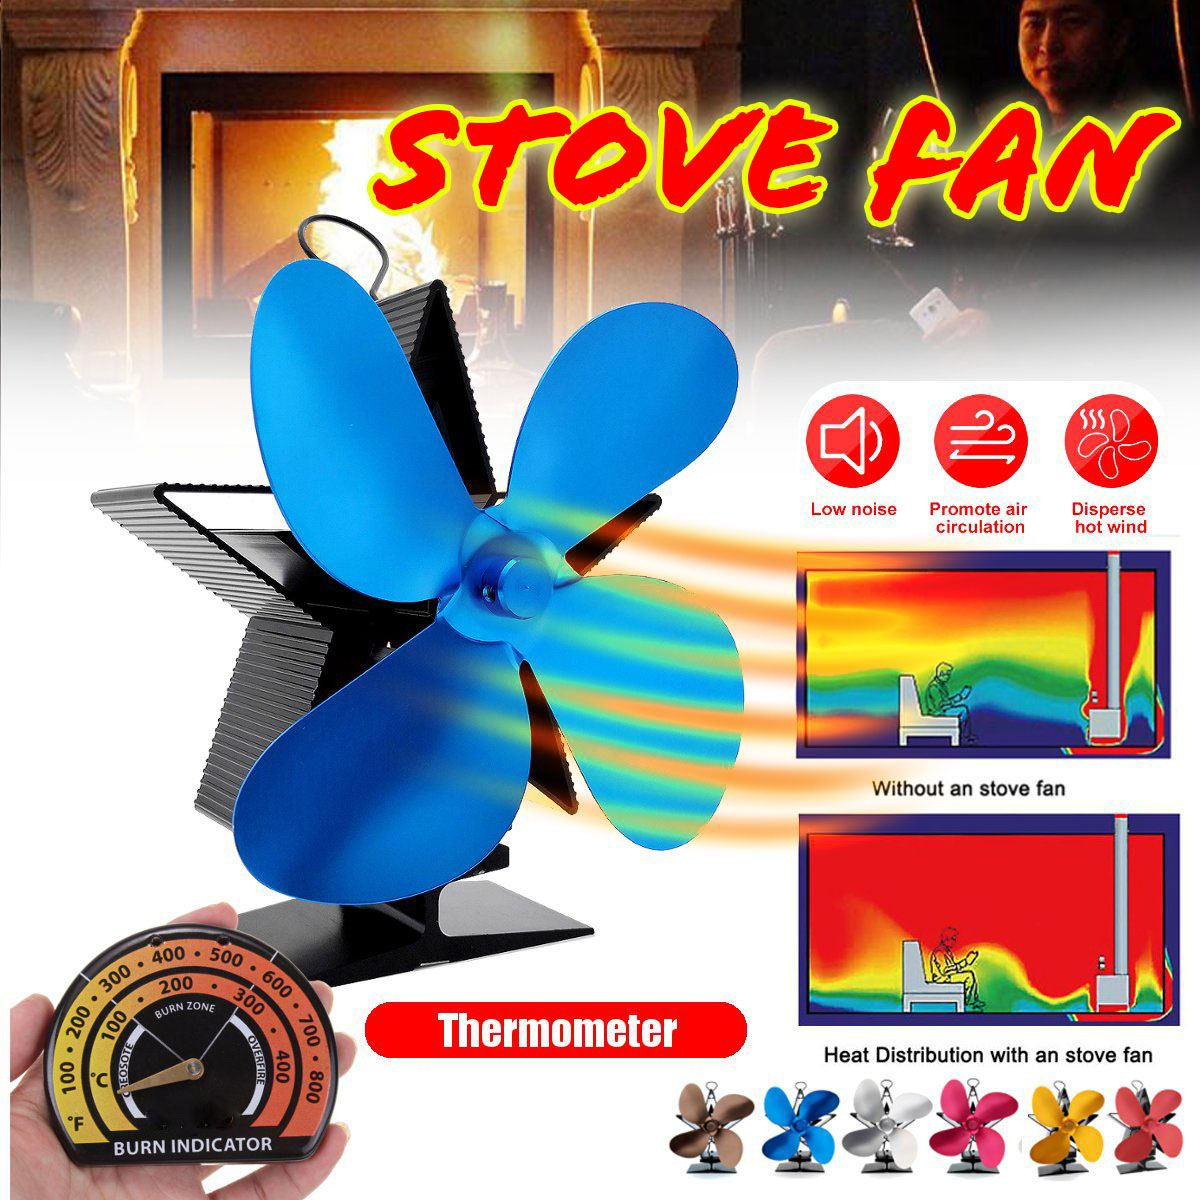 Blue 4 Blades Heat Powered Stove Fan Eco Fireplace Fan Wood Burner Quiet Energy Saving With Thermometer Heat Distribution